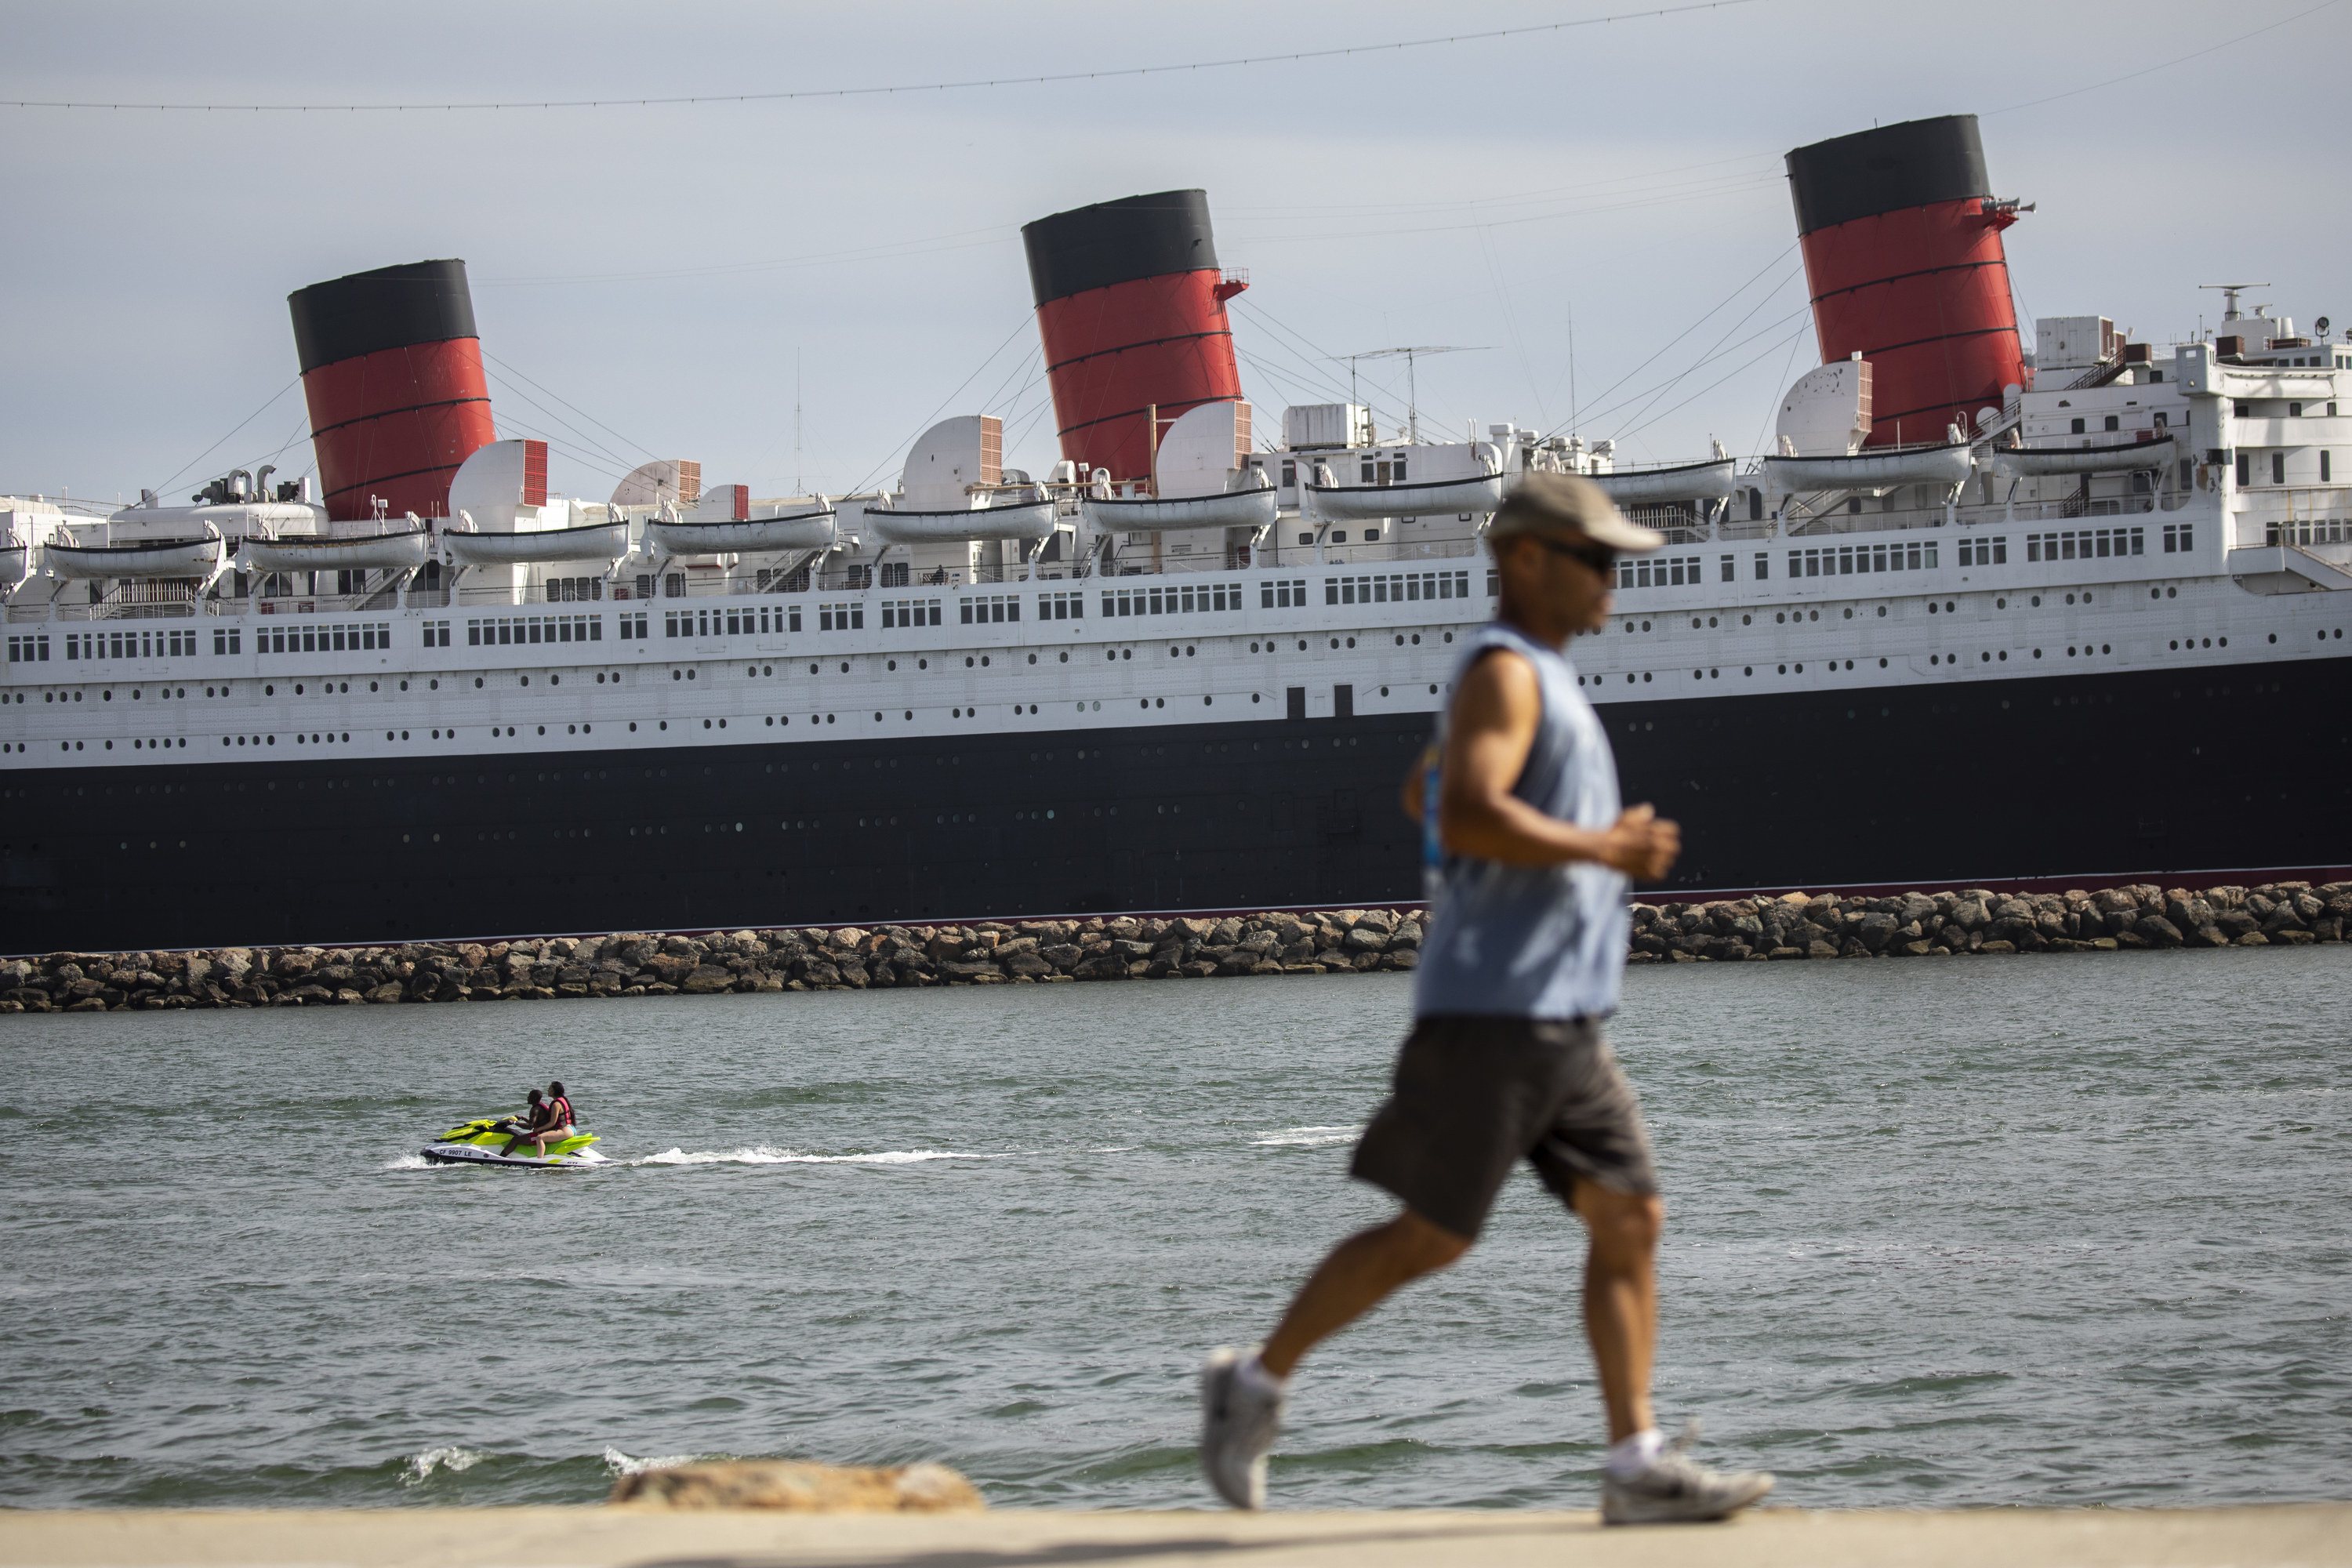 Two people on a jetski are seen in the water, while a runner passes by along Shoreline Aquatic Park, with the Queen Mary ship in the distance, docked in Long Beach, CA,